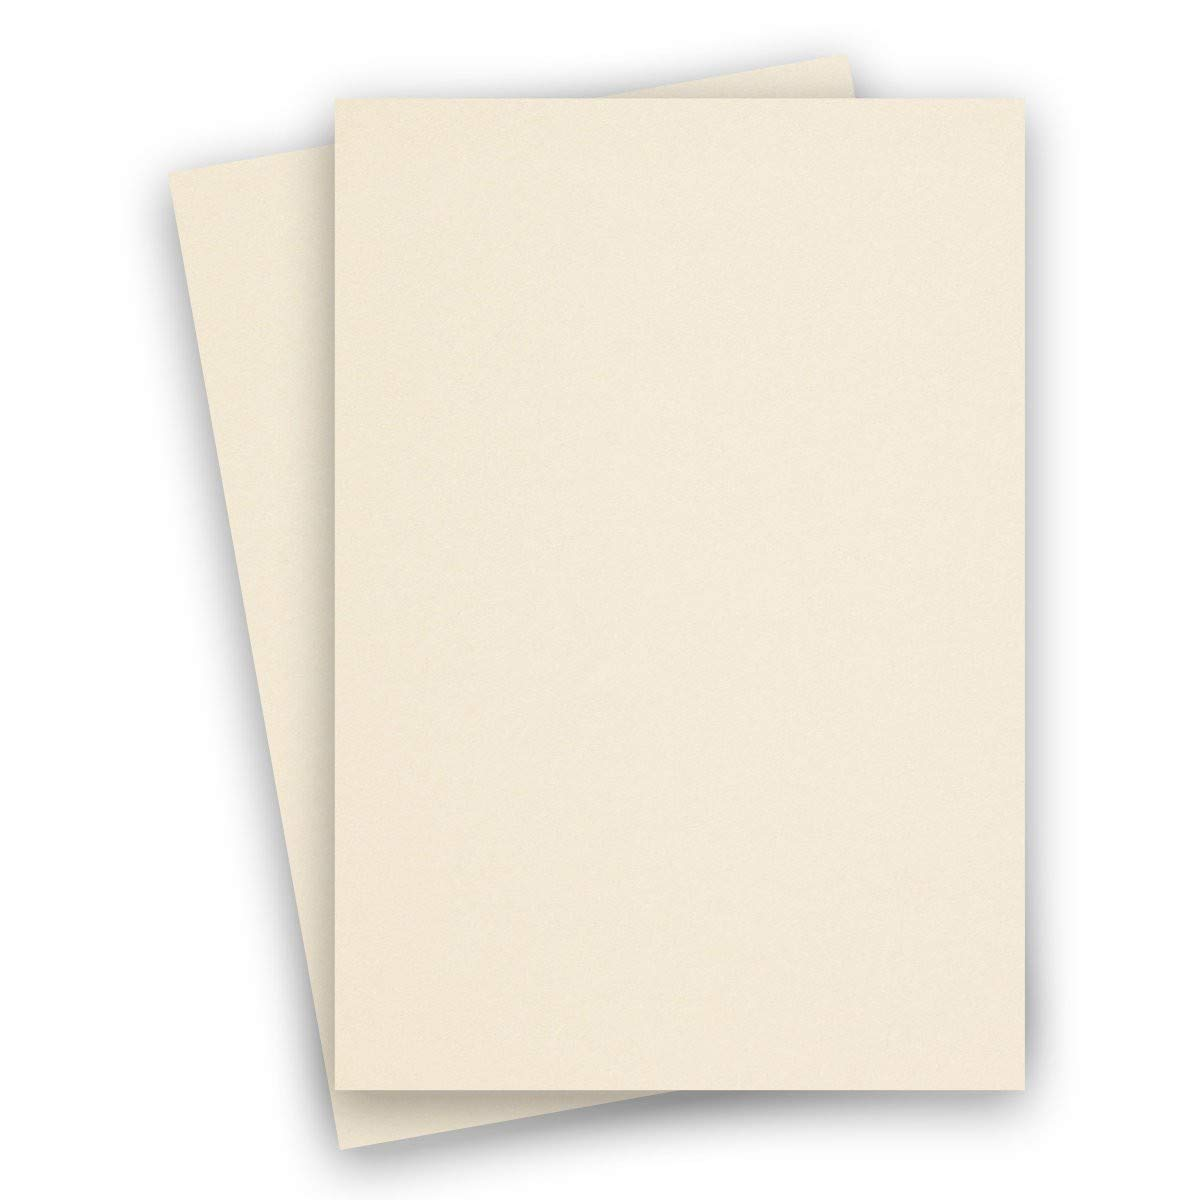 Poison Ivory 8-1/2-x-14 Lightweight 32T Multi-use Paper 200-pk - PaperPapers 118 GSM (32/80lb Text) Legal Size Printer Friendly Paper - Professionals, Designers, Crafters and DIY Projects by Paper Papers